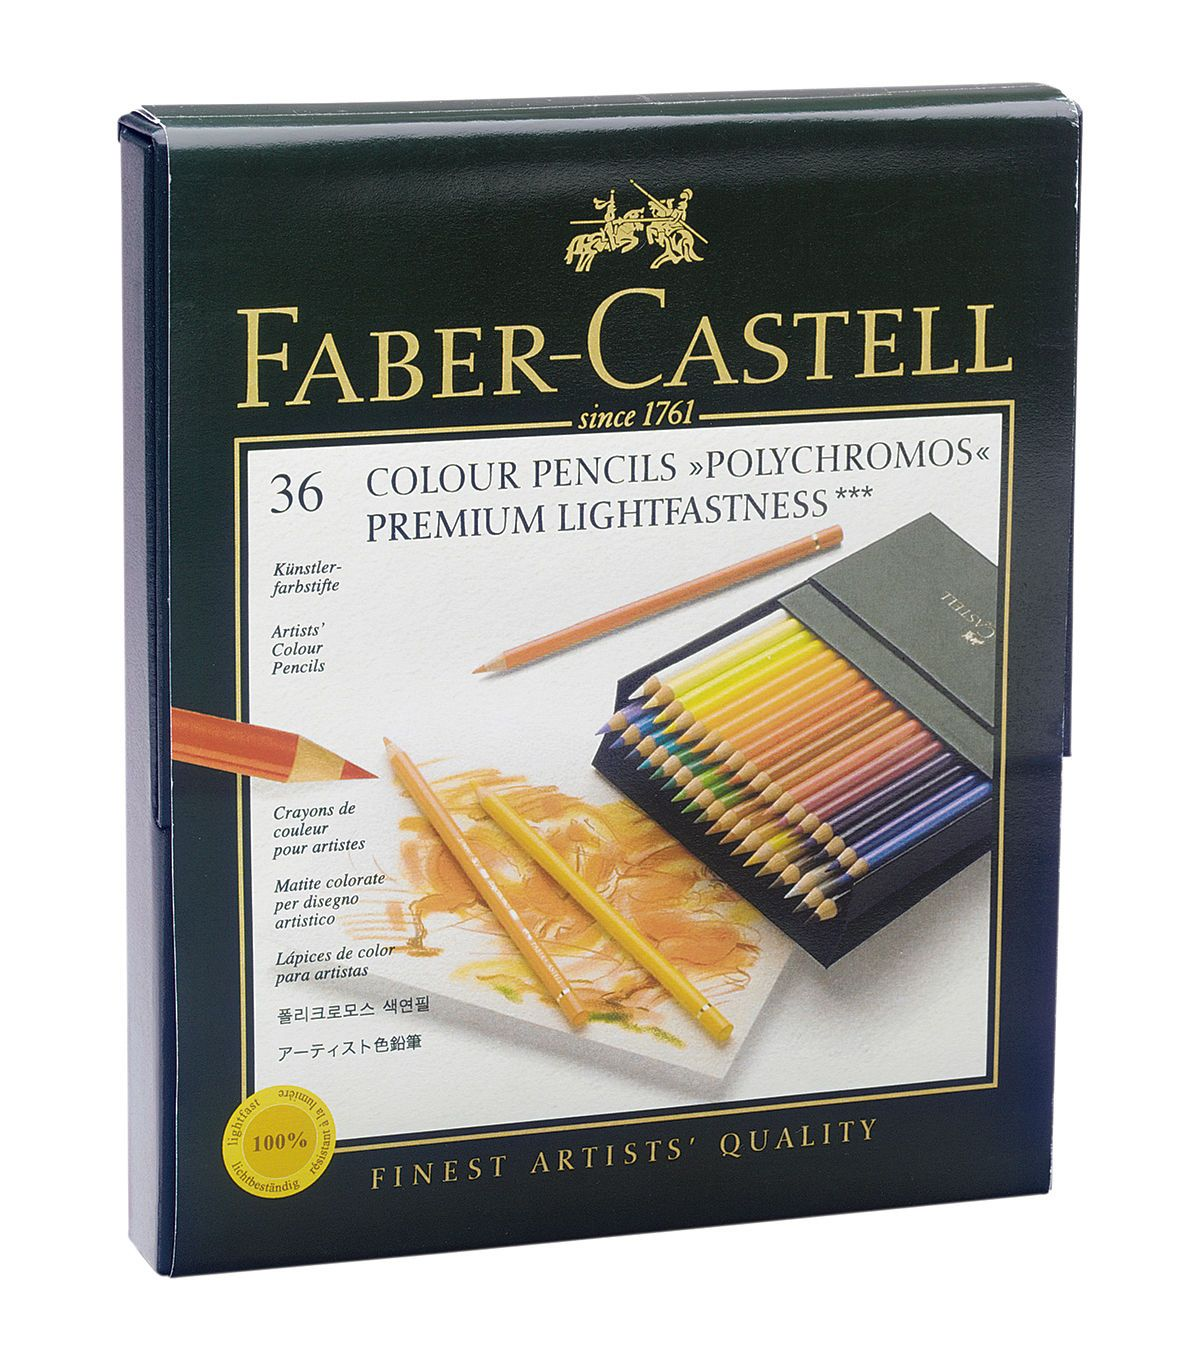 Faber Castell 36ct Polychromos Colored Pencils Colored Pencils